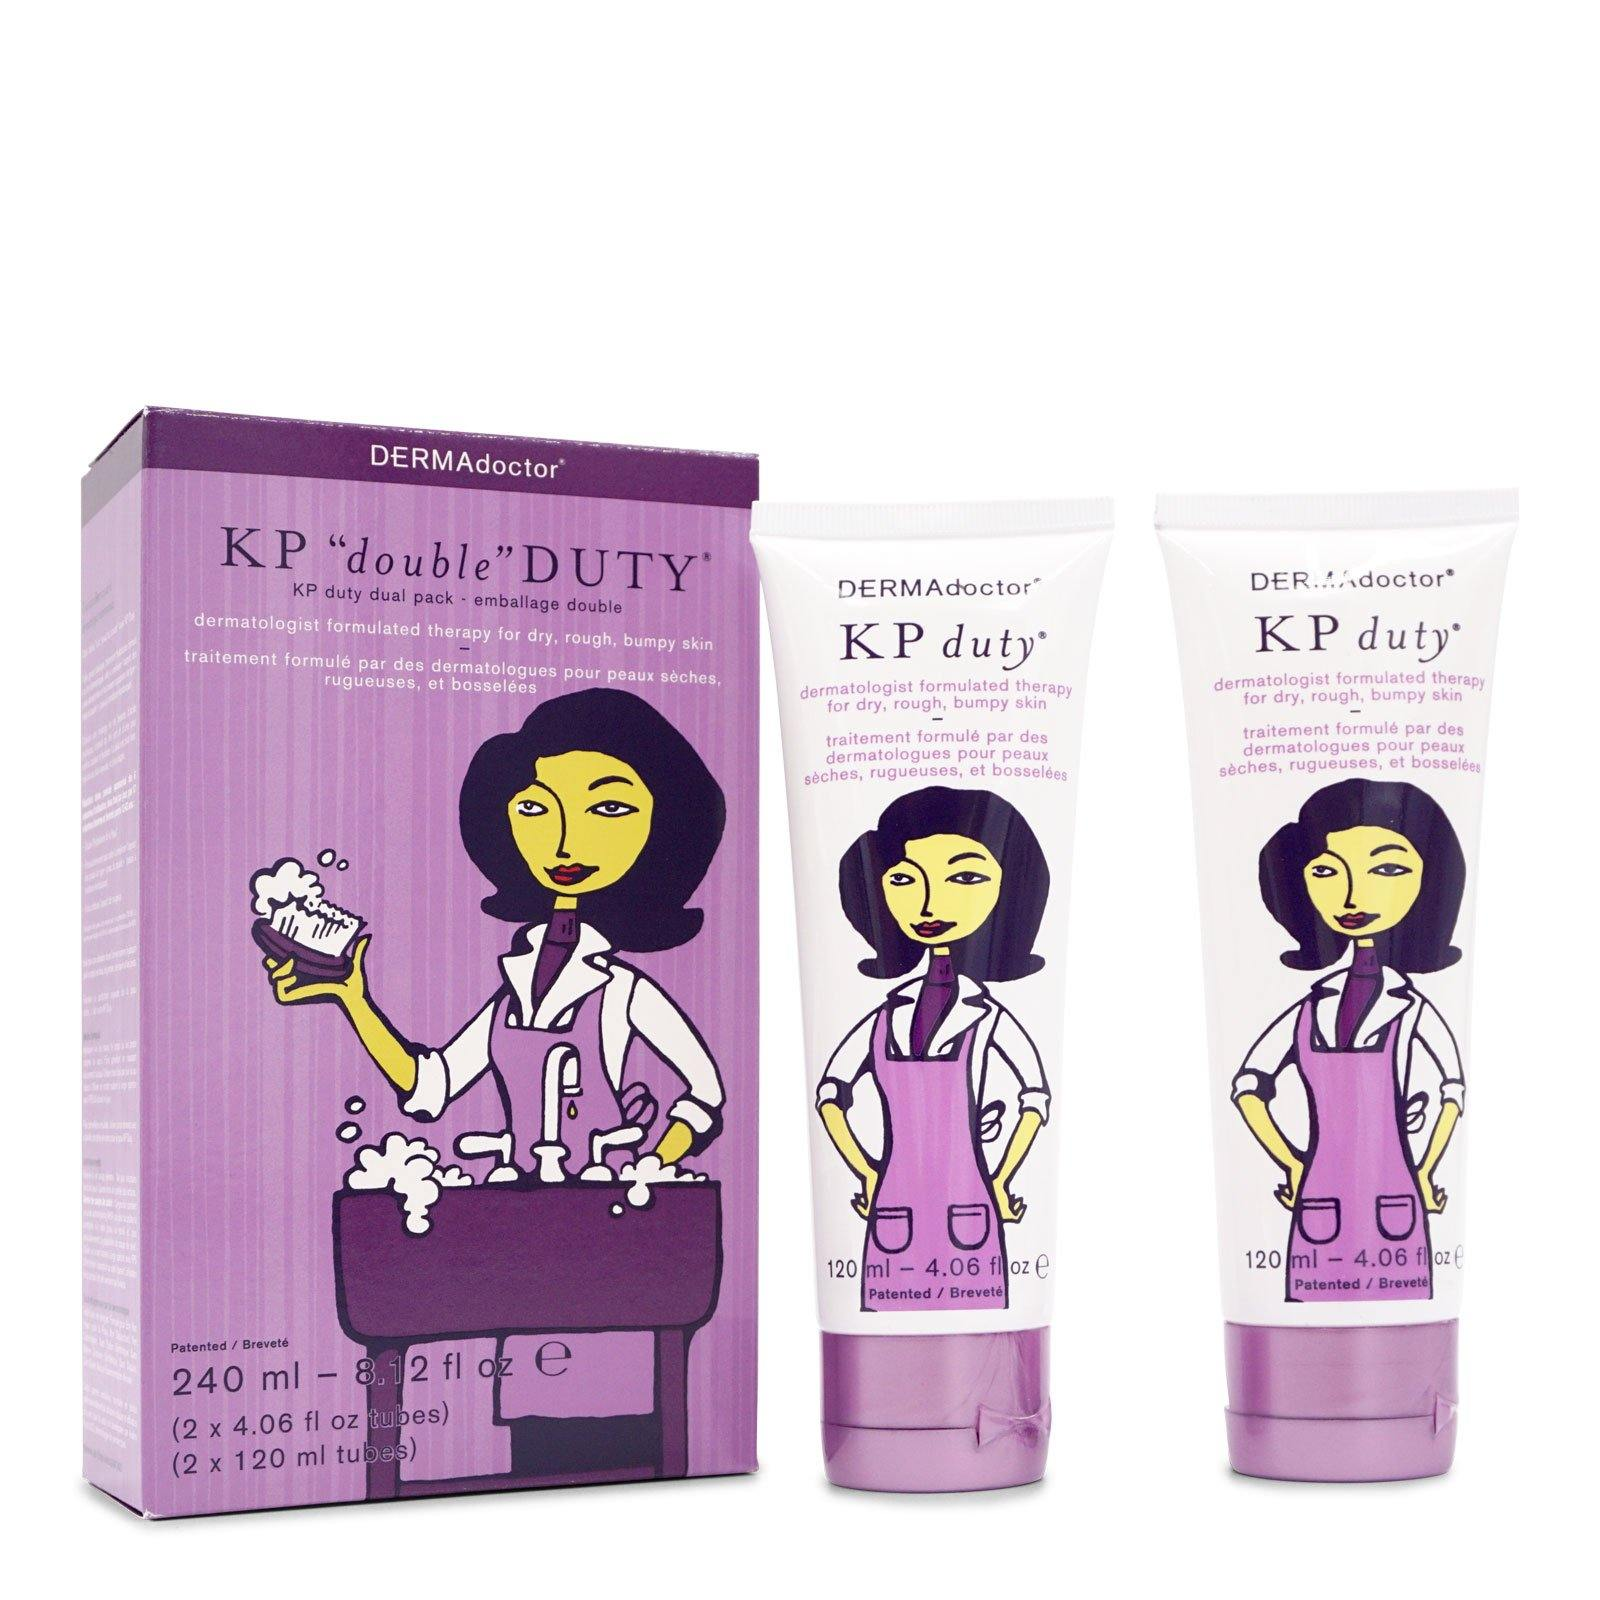 DermaDoctor KP ''Double'' Duty Dual Pack (2 KP Duty AHA Moisturizing Therapy For Dry Skin) - (240ml/8.12oz) (12/cs)